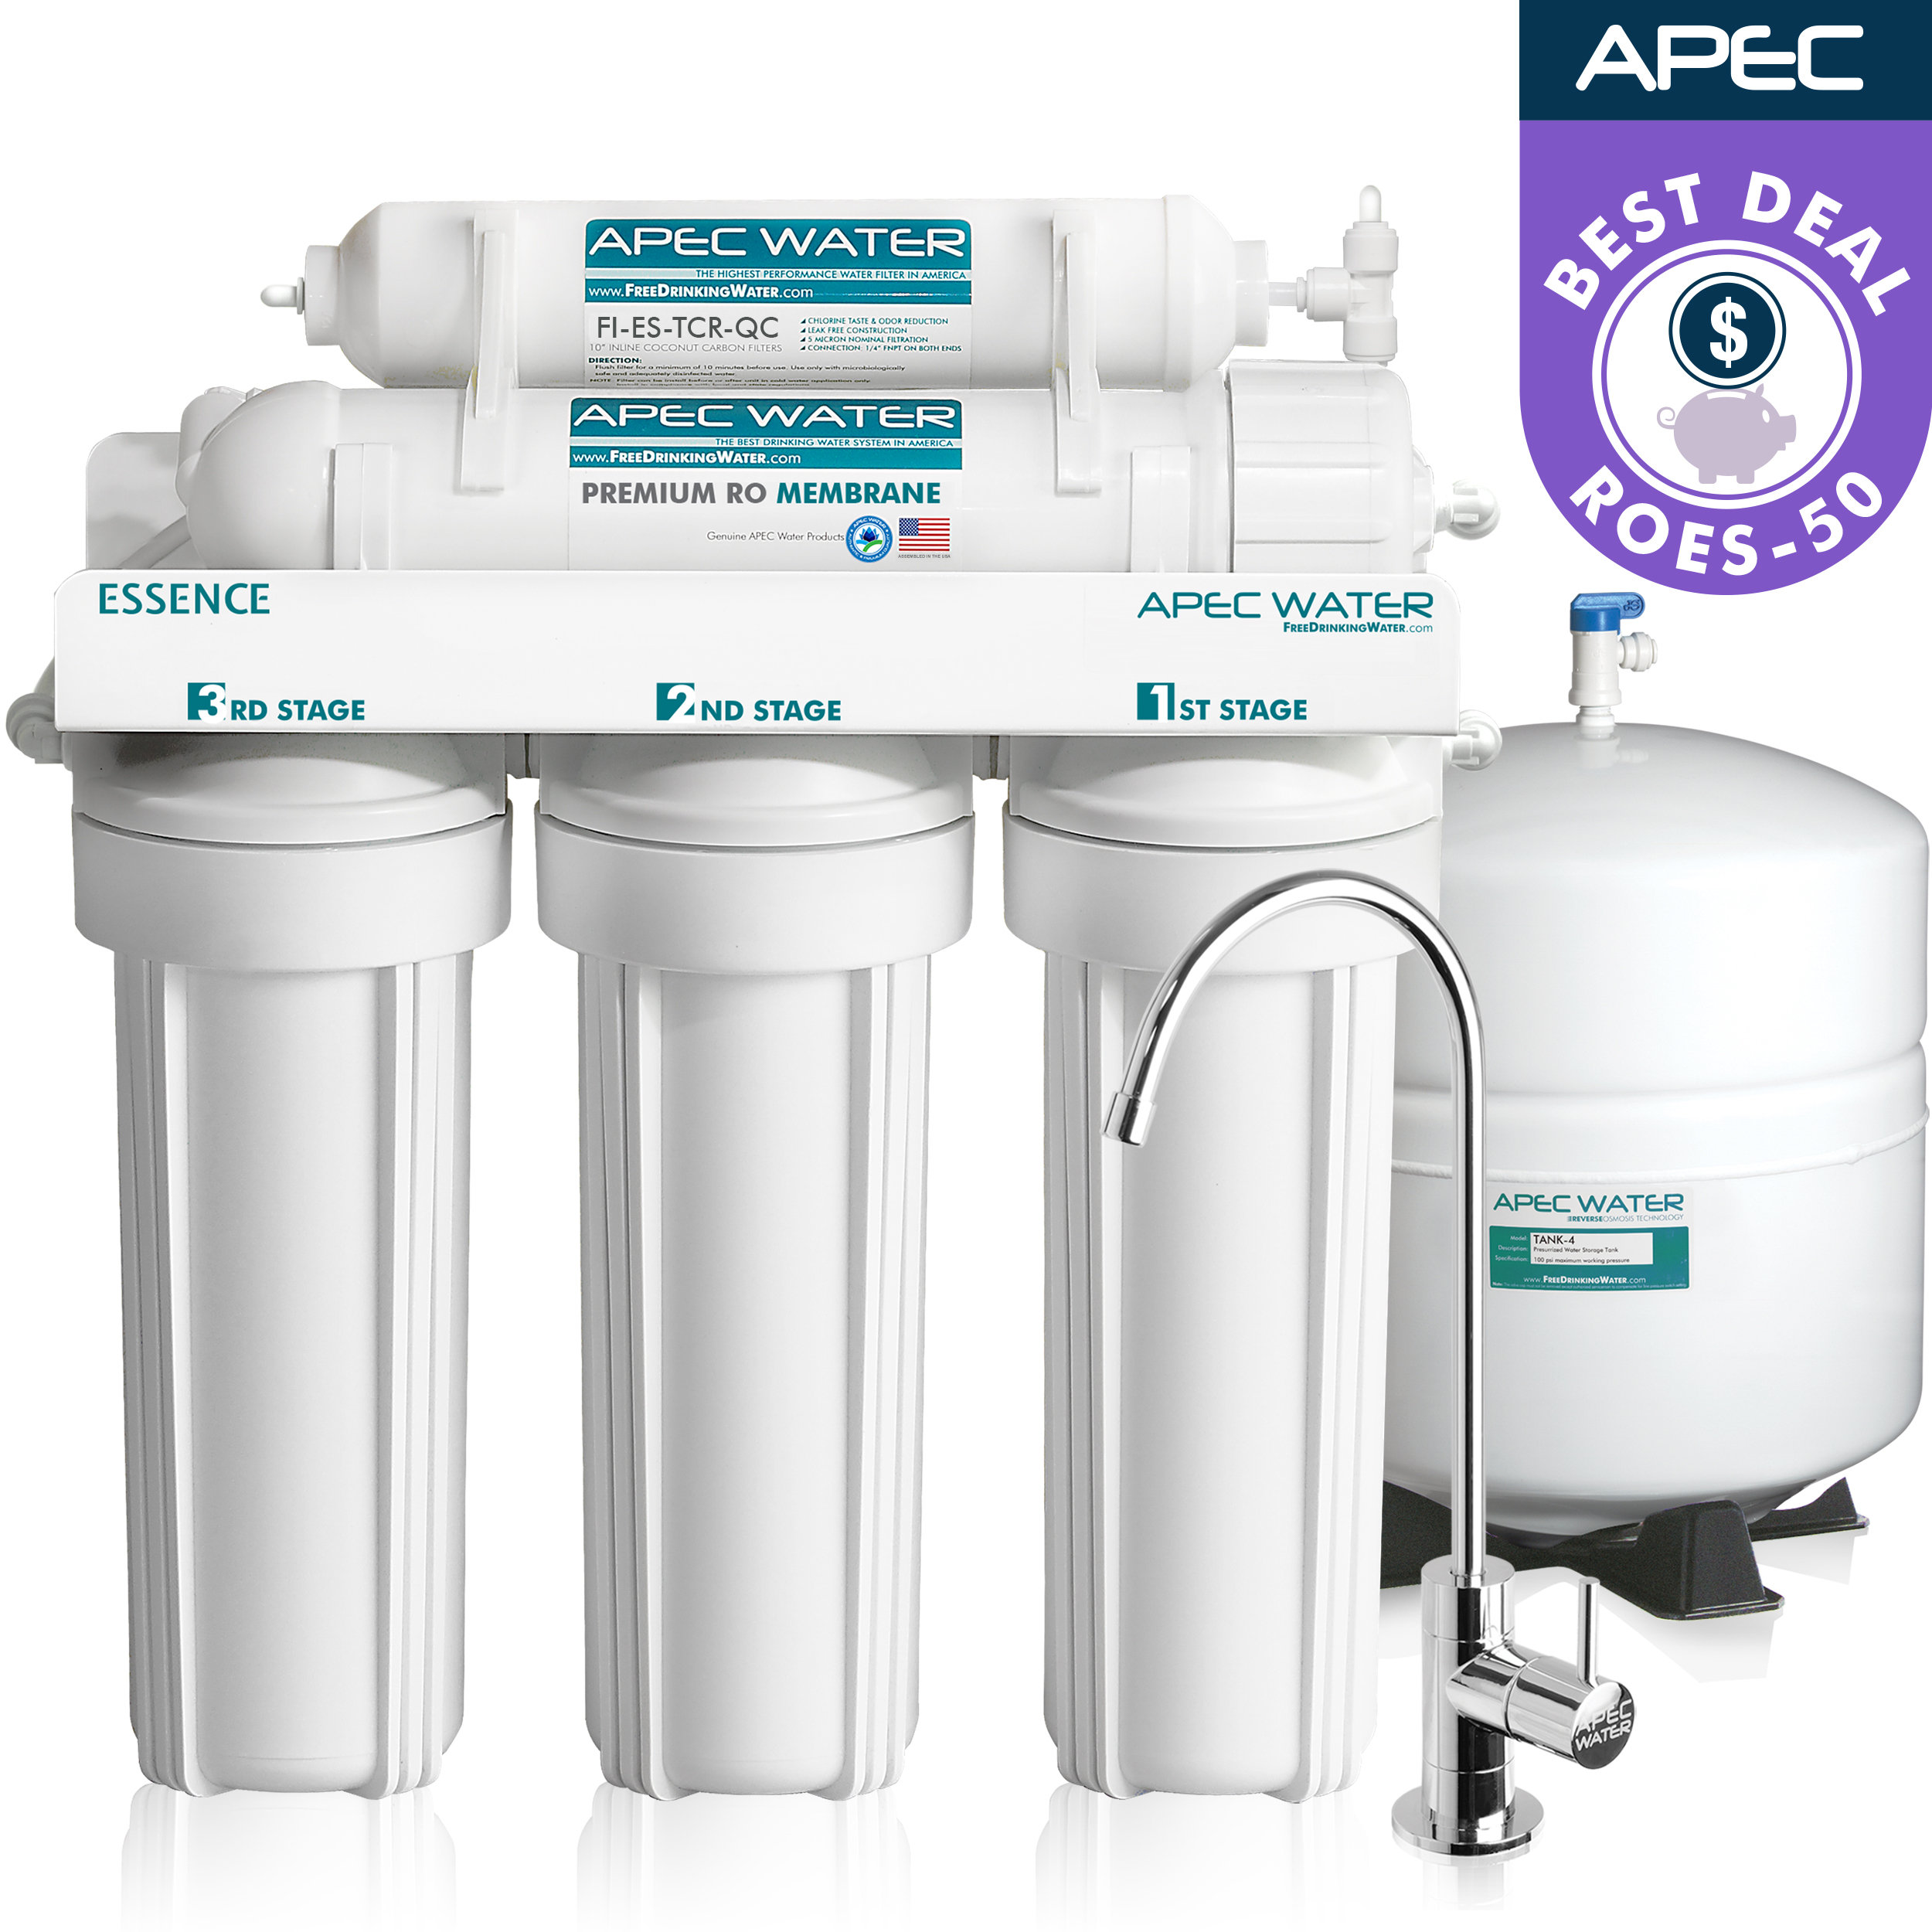 APEC Ultra Safe Reverse Osmosis Drinking Water Filter System (ESSENCE ROES-50) by